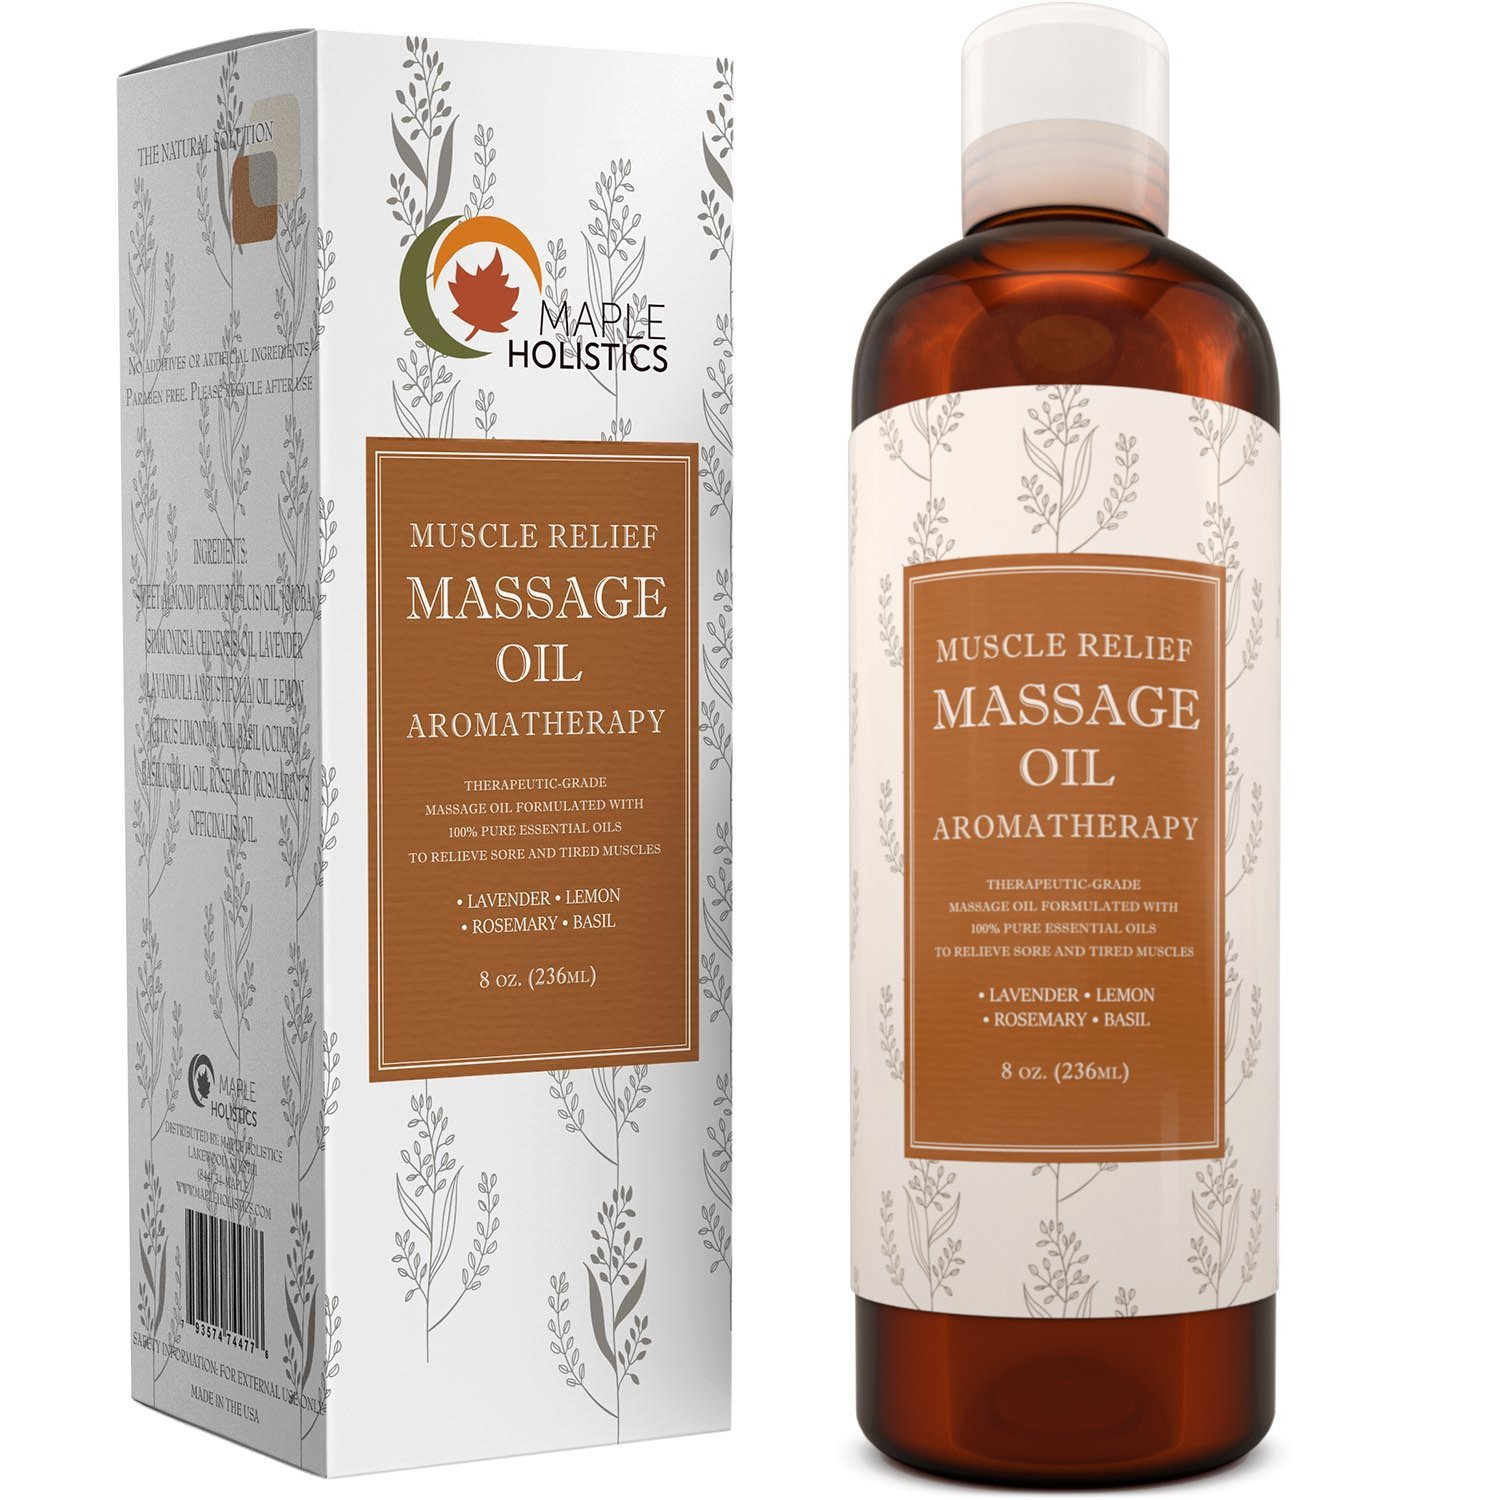 Muscle Pain Massage Oil - Muscle and Joint Pain Relief - Anti Cellulite Massage Oil for Men and Women - Aromatherapy Essential Oils for Healing - Deep Tissue Massage Lotion - Natural Anti Aging Oil …